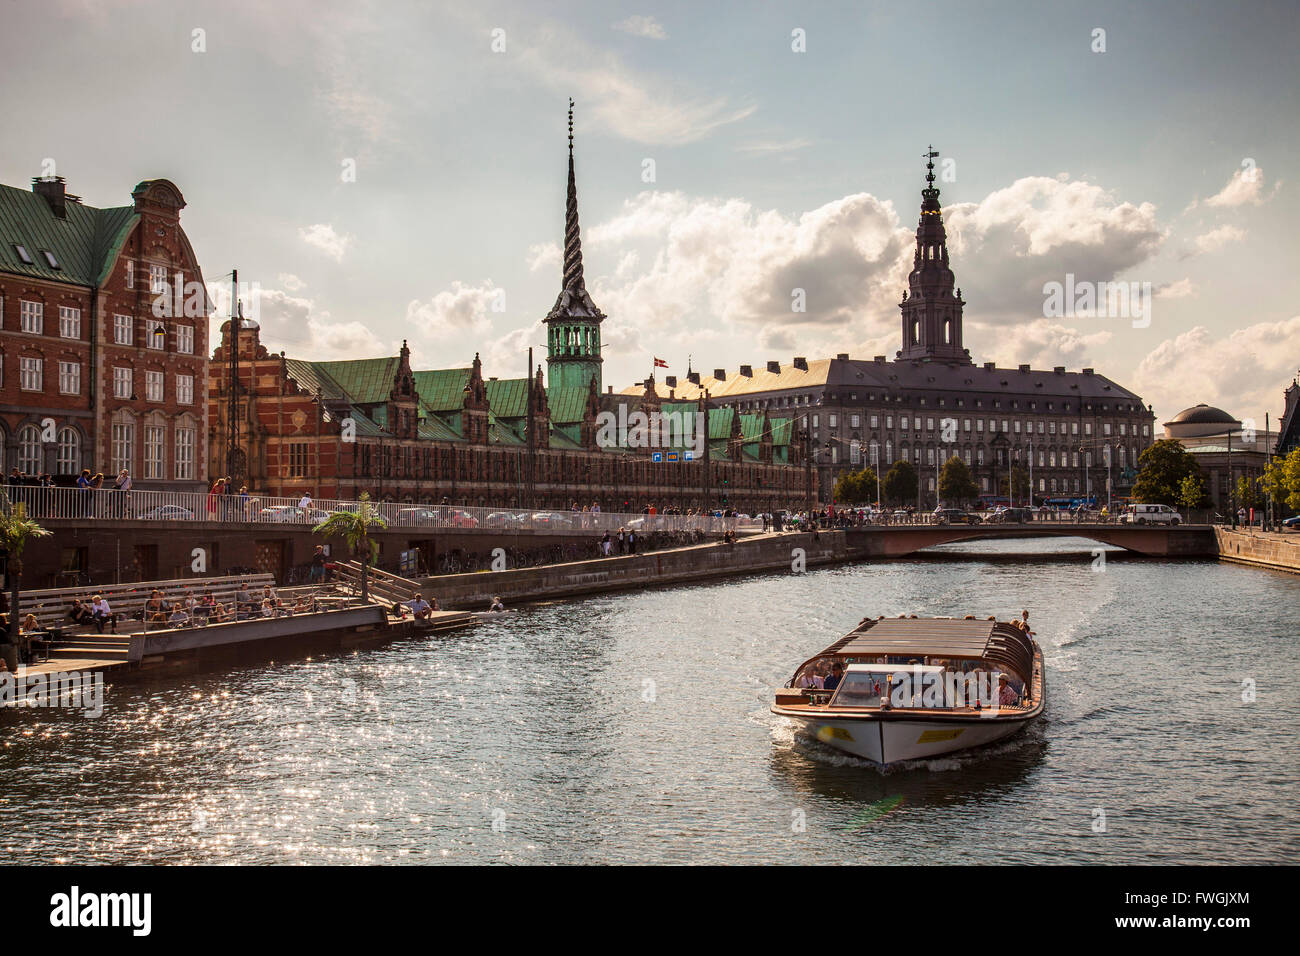 Ferry On River By Borsen Building And Christiansborg Palace Against Cloudy Sky - Stock Image